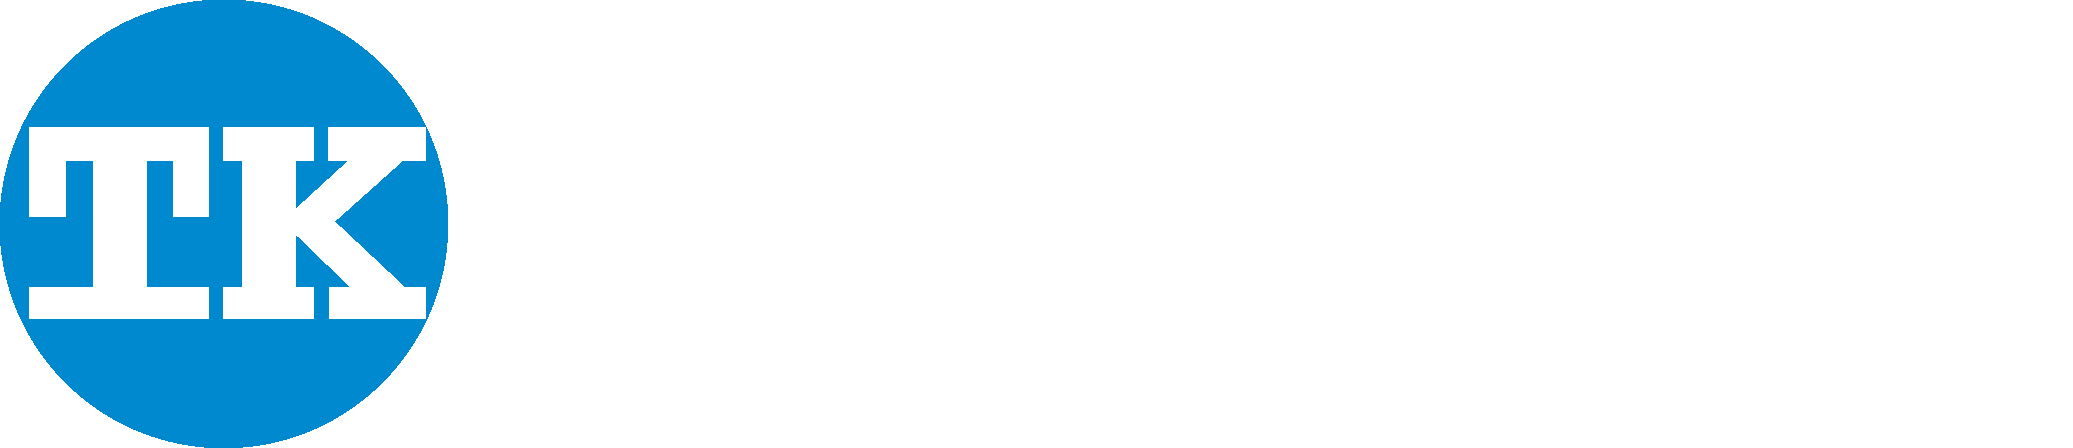 Takachiho Fire, Security & Services (Thailand) Ltd.